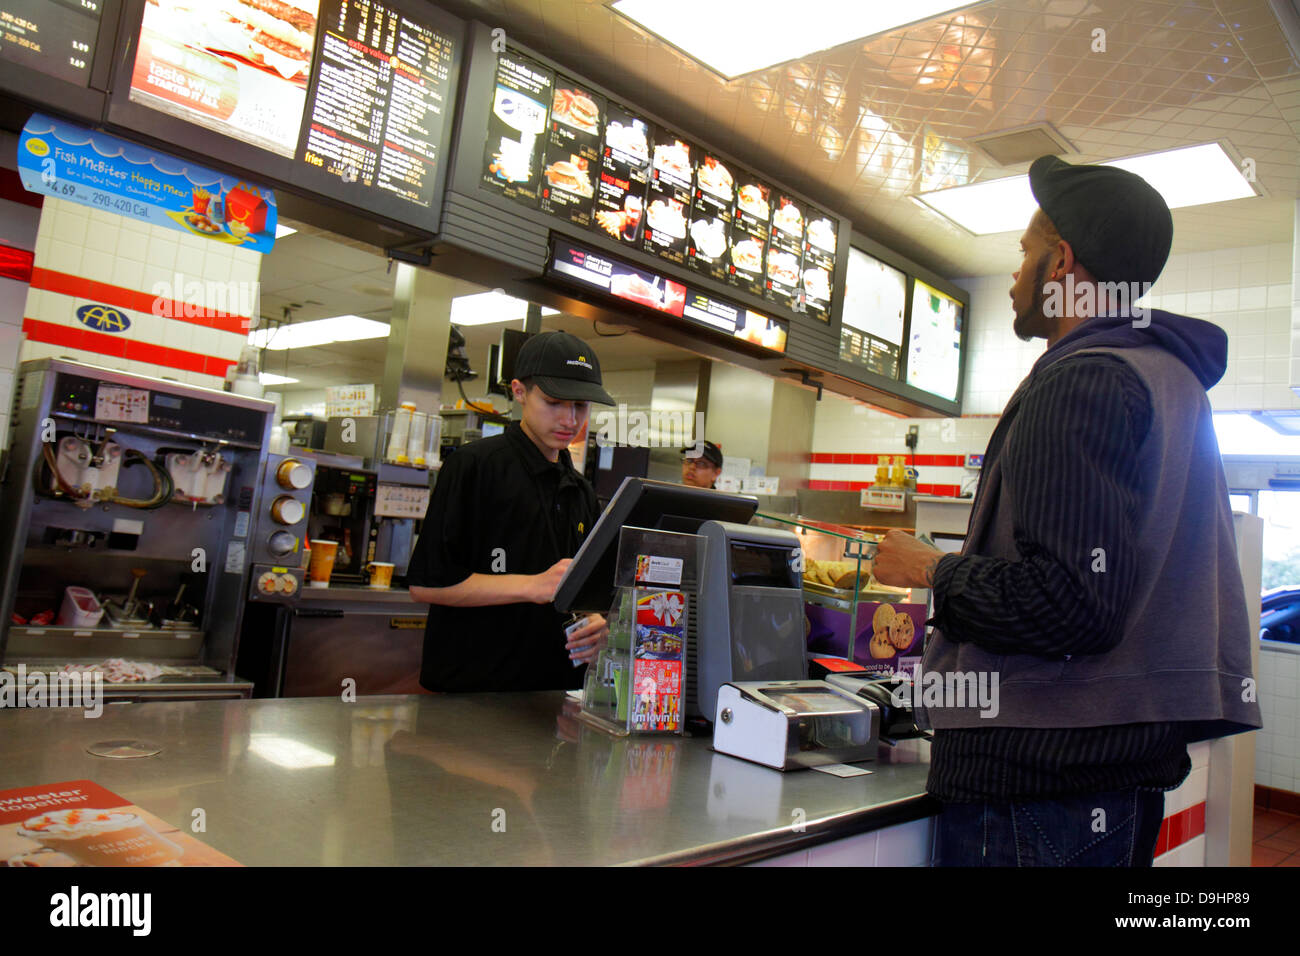 Nevada Las Vegas Sahara Avenue McDonald's fast food restaurant employee job behind counter taking order teen - Stock Image